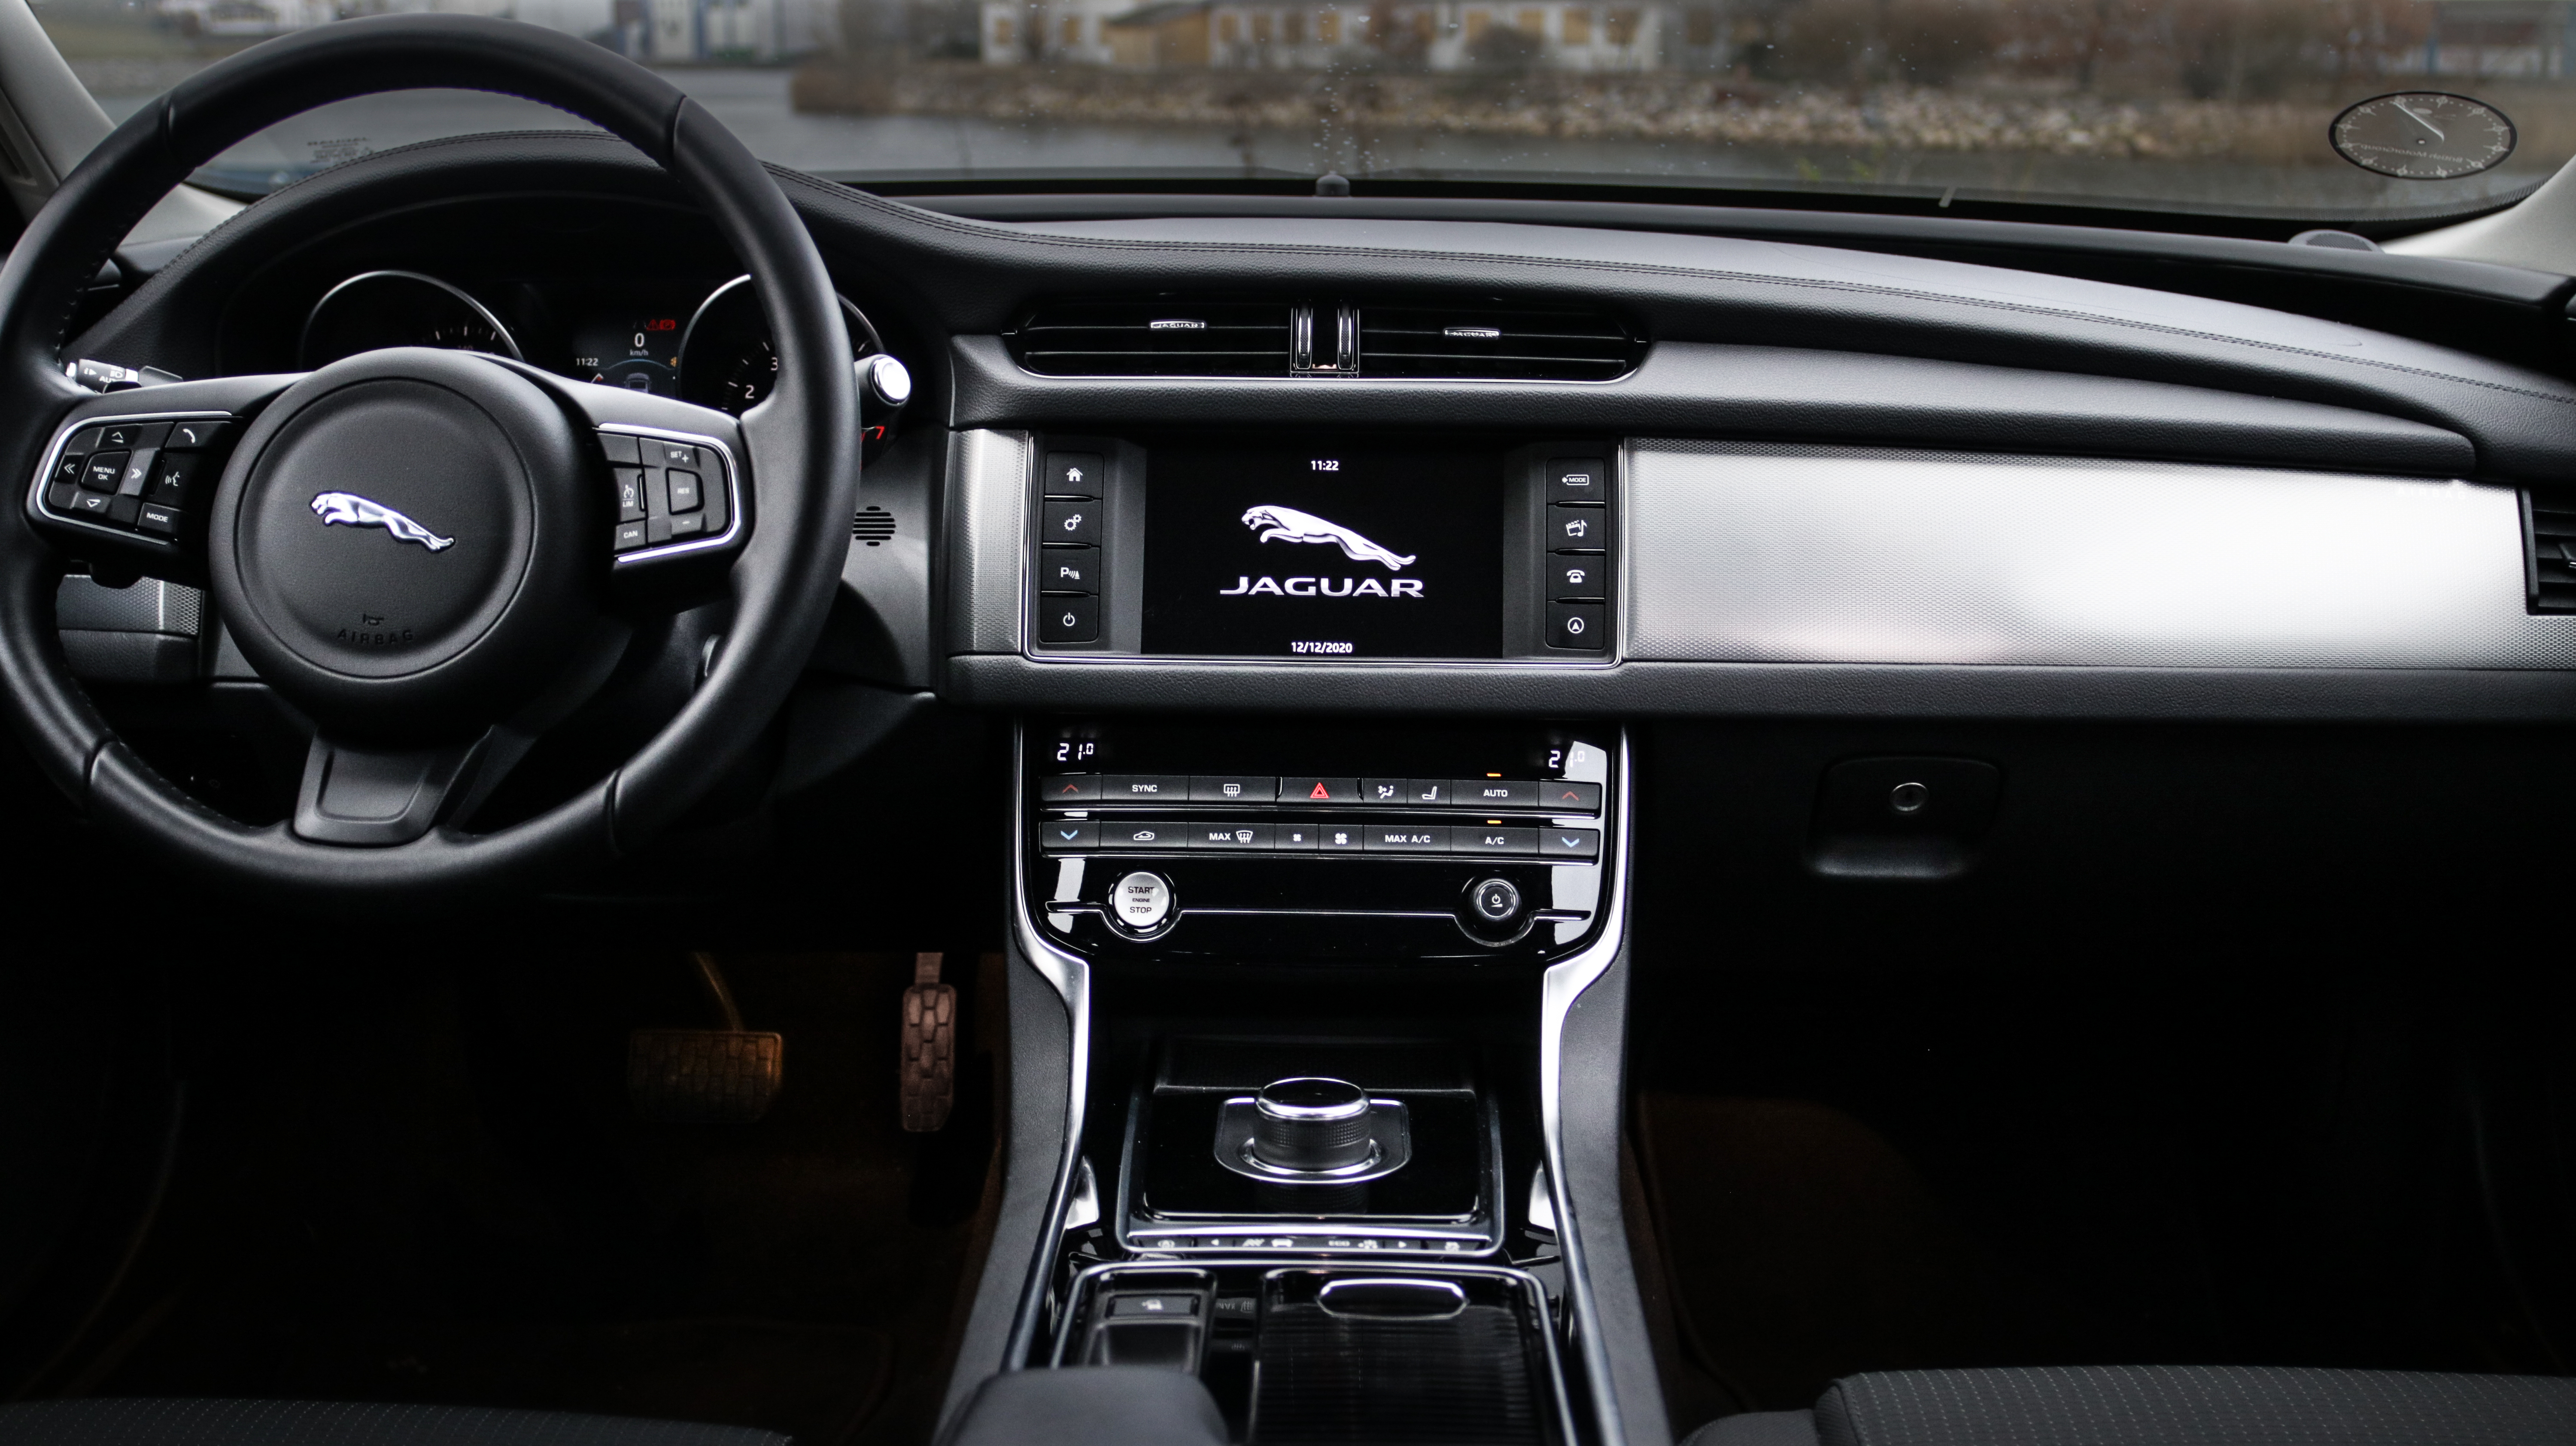 Jaguar Experiences Loss of Power With Engine Fault Lamp Illuminated